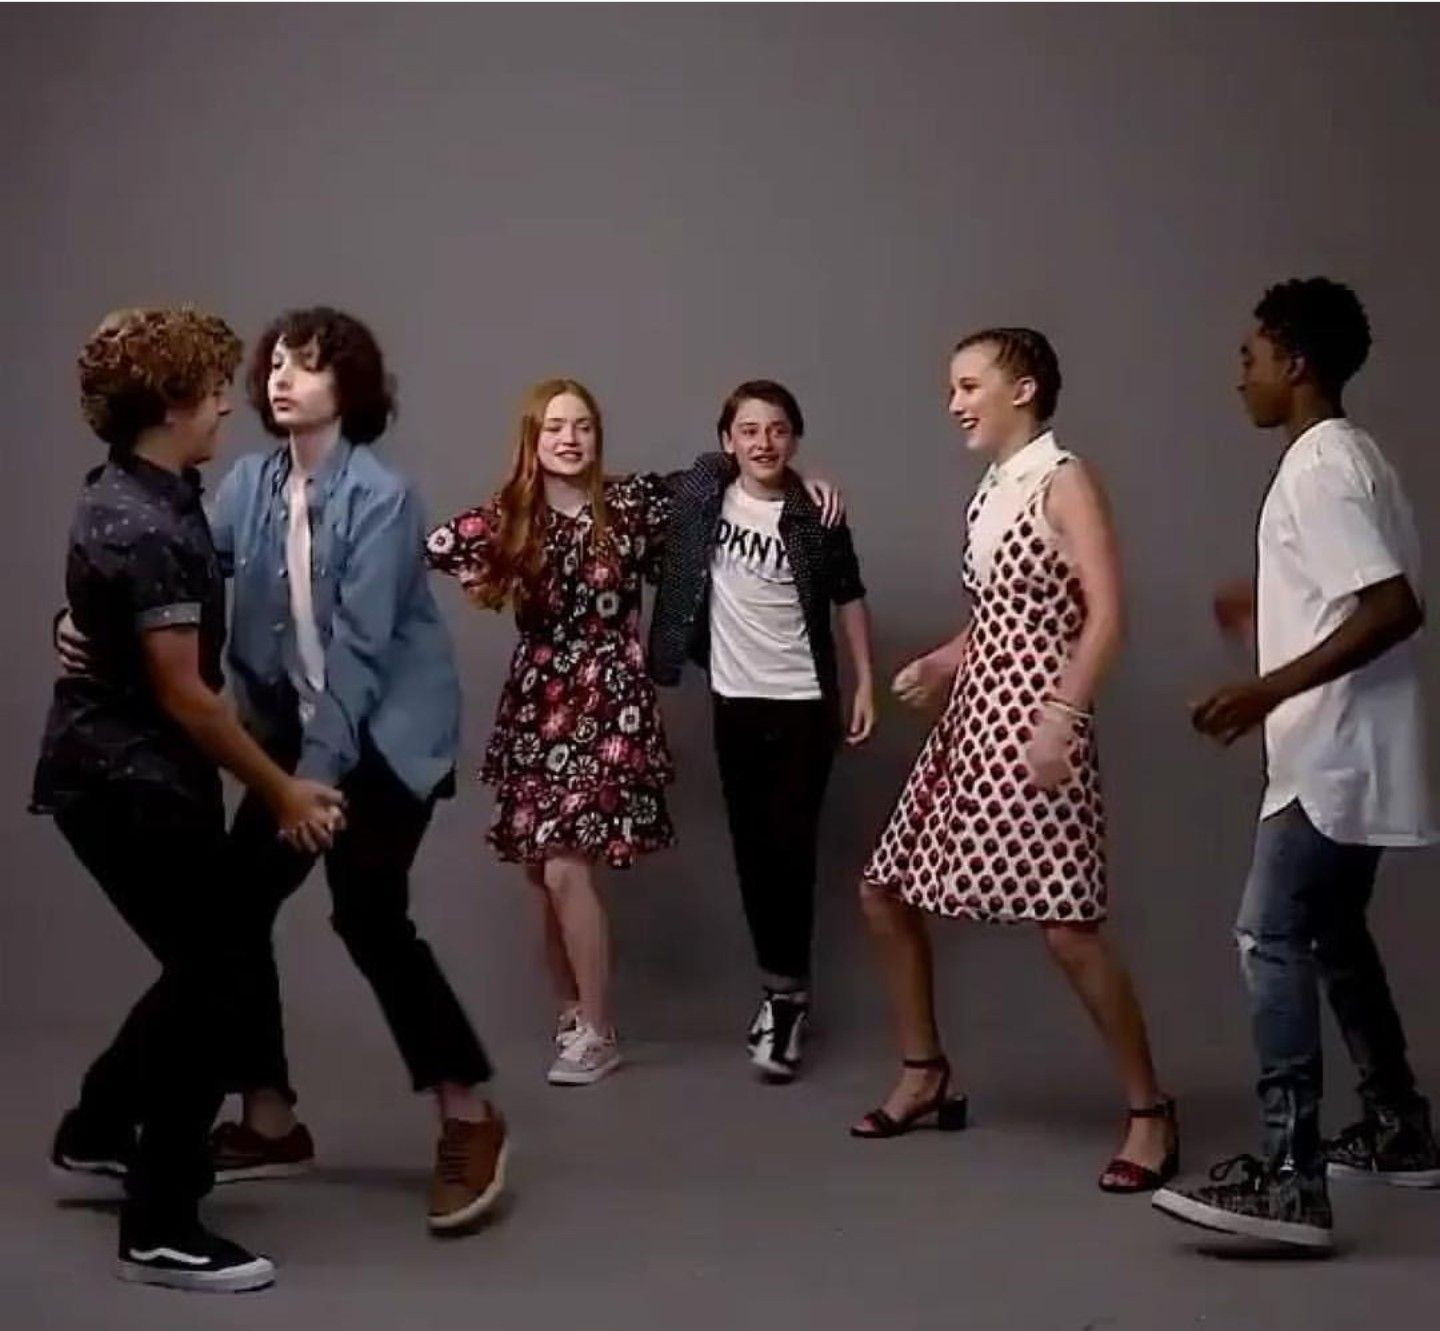 Is millie bobby brown dating noah